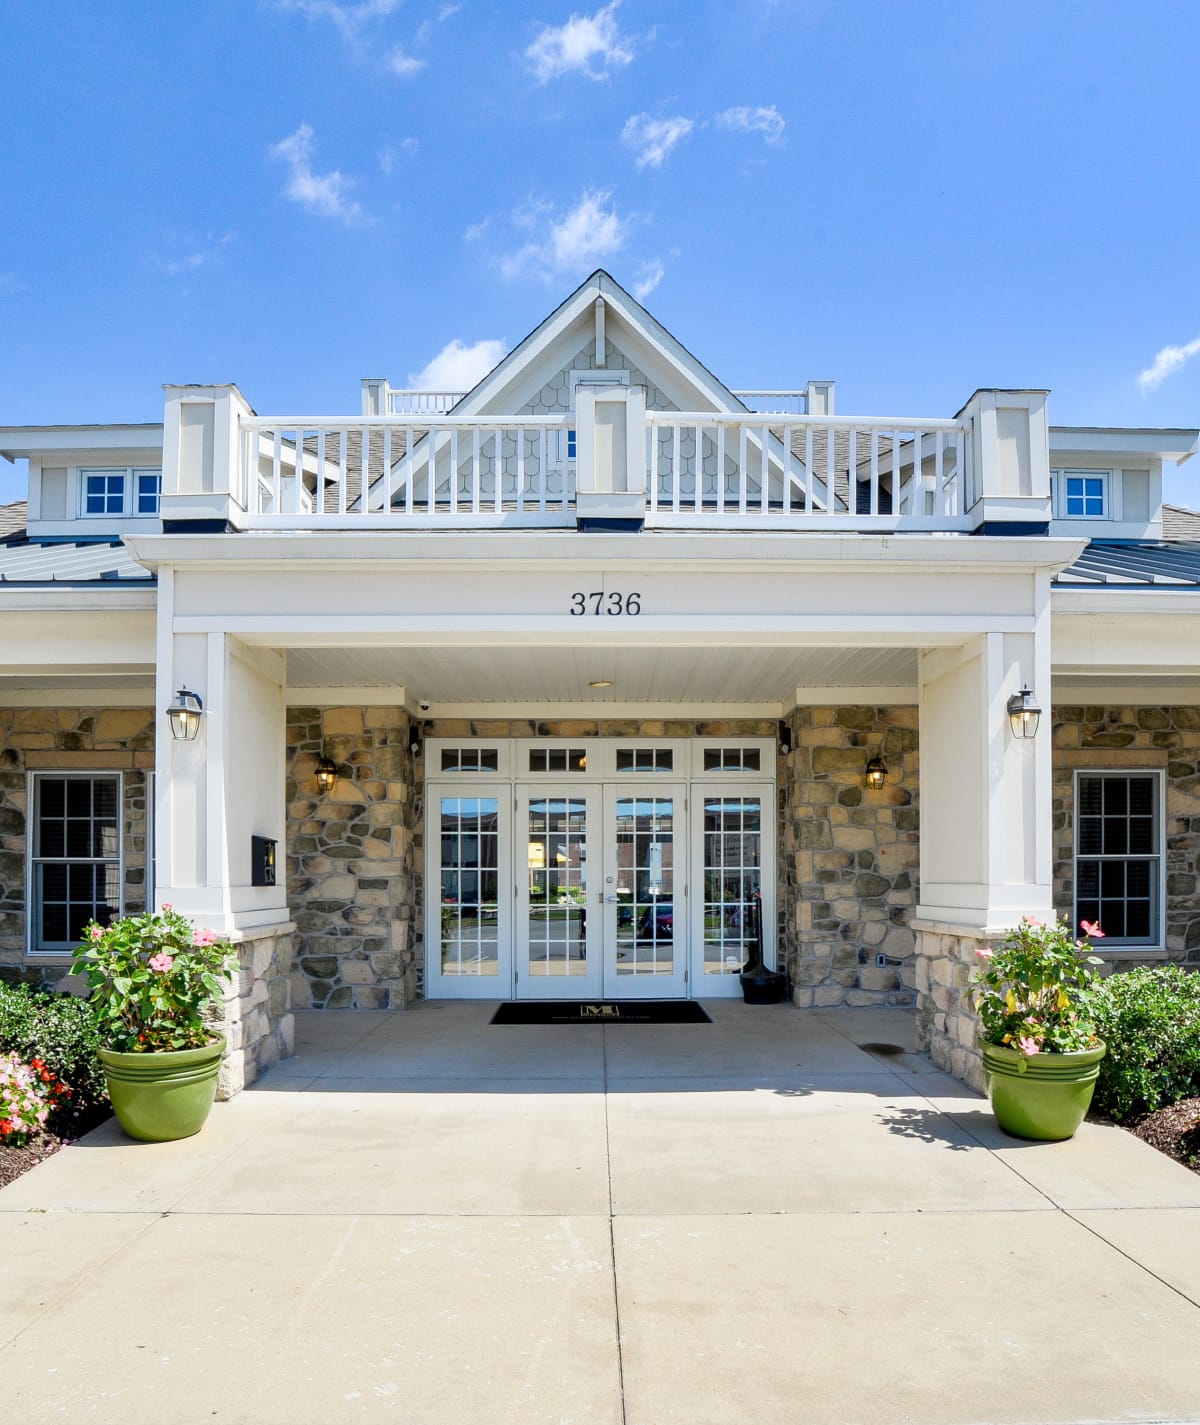 2 Bedroom Apartments In Md: Apartments In Middle River, MD